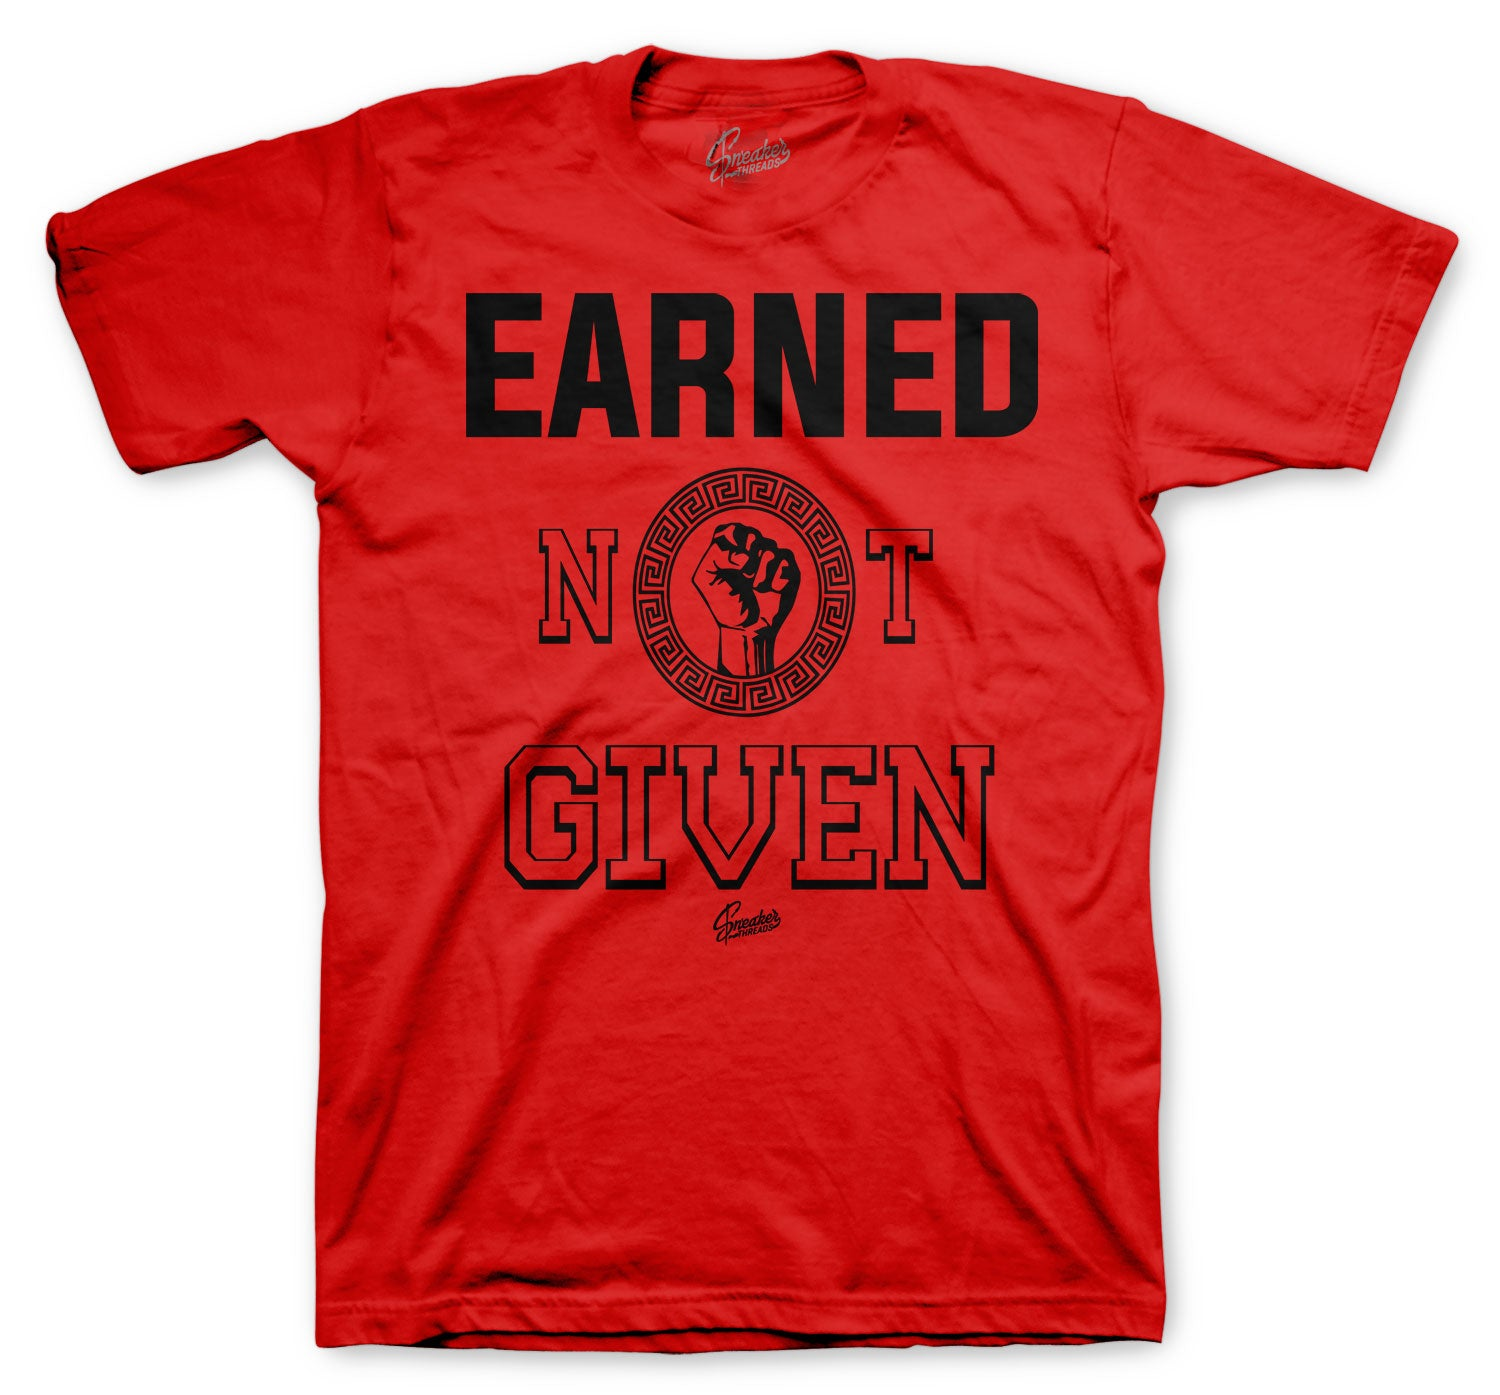 T shirts for men to match the Jordan 12 reverse flu game sneaker collection